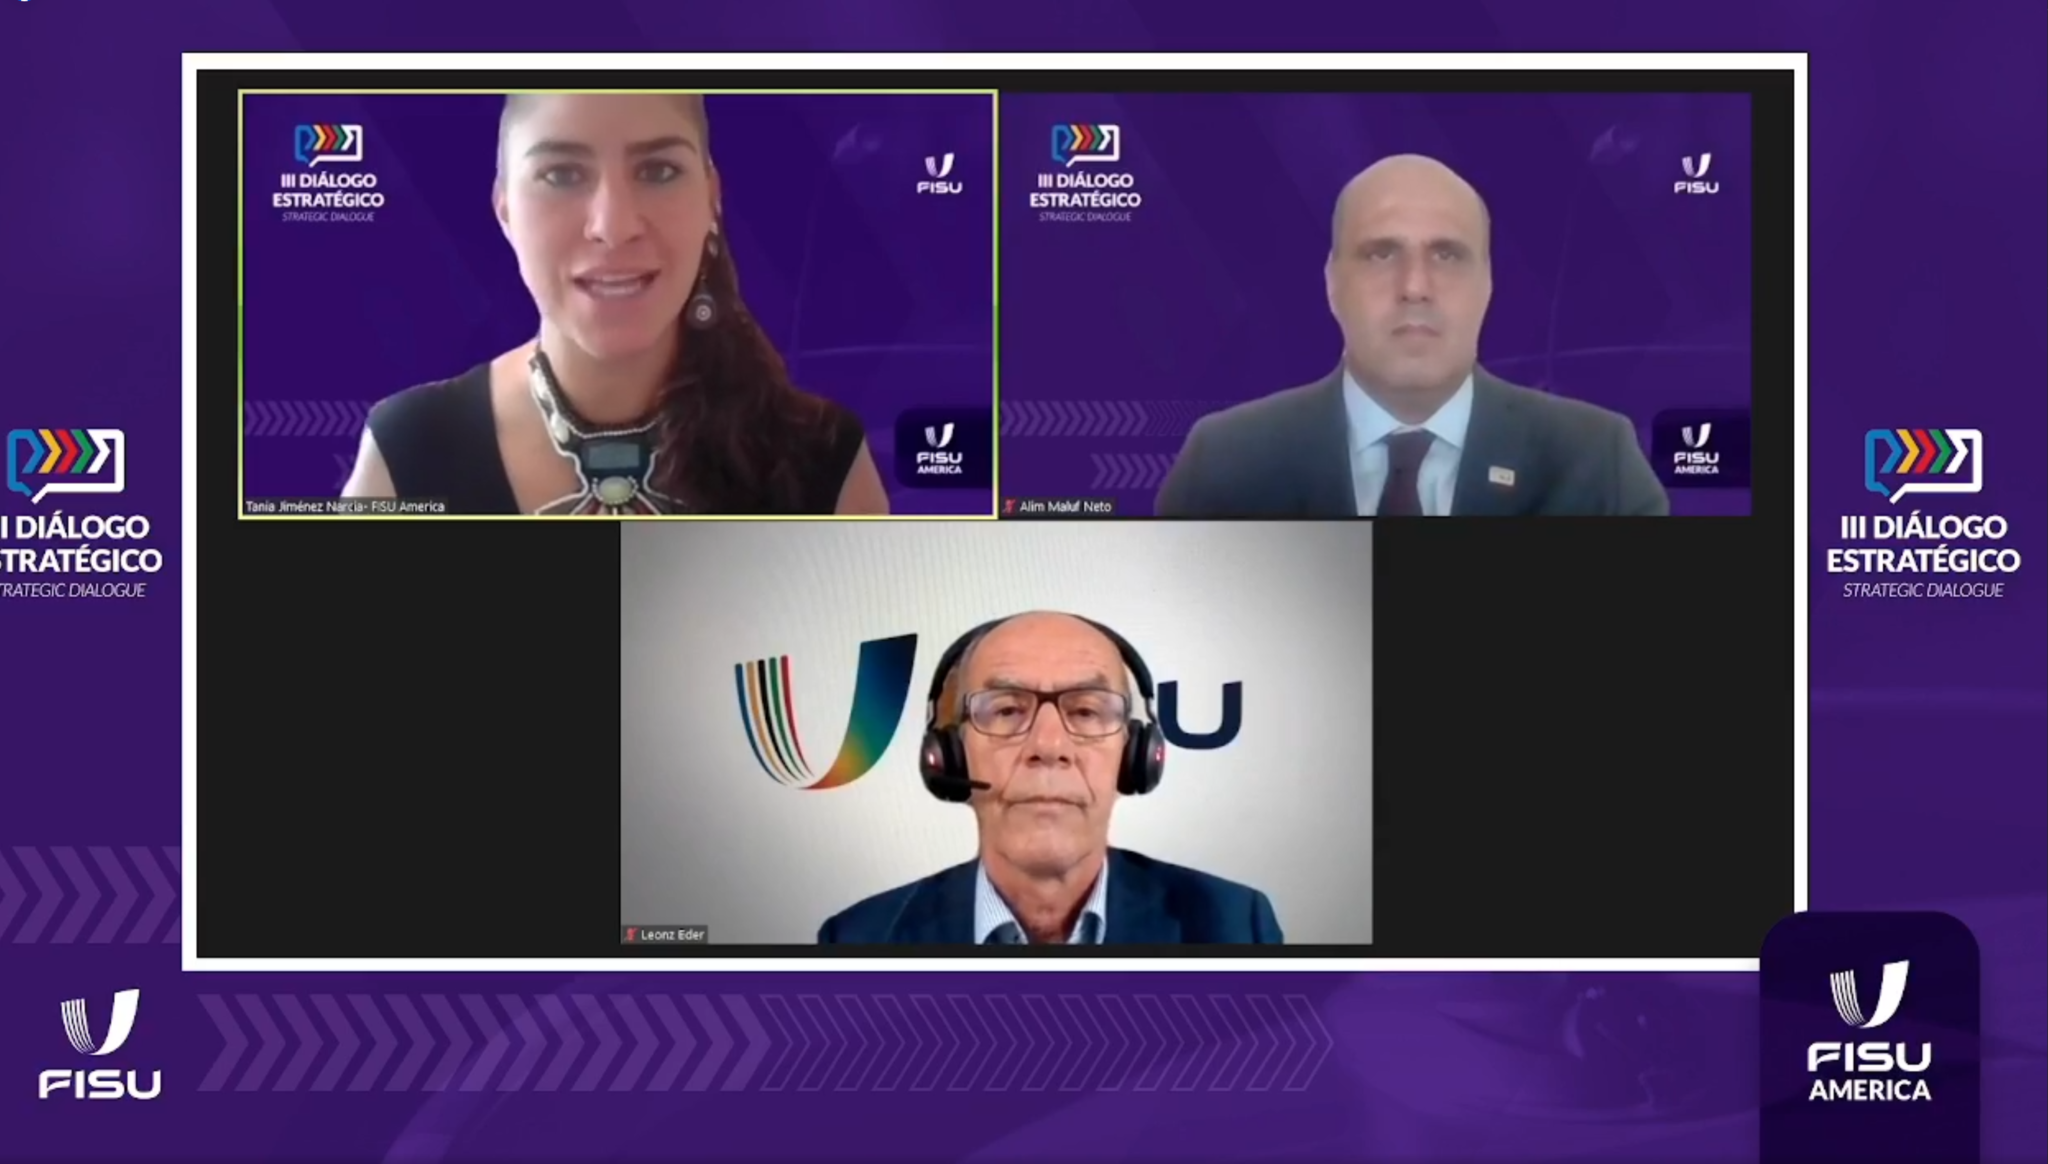 FISU America holds third strategic dialogue meeting with two-day webinar